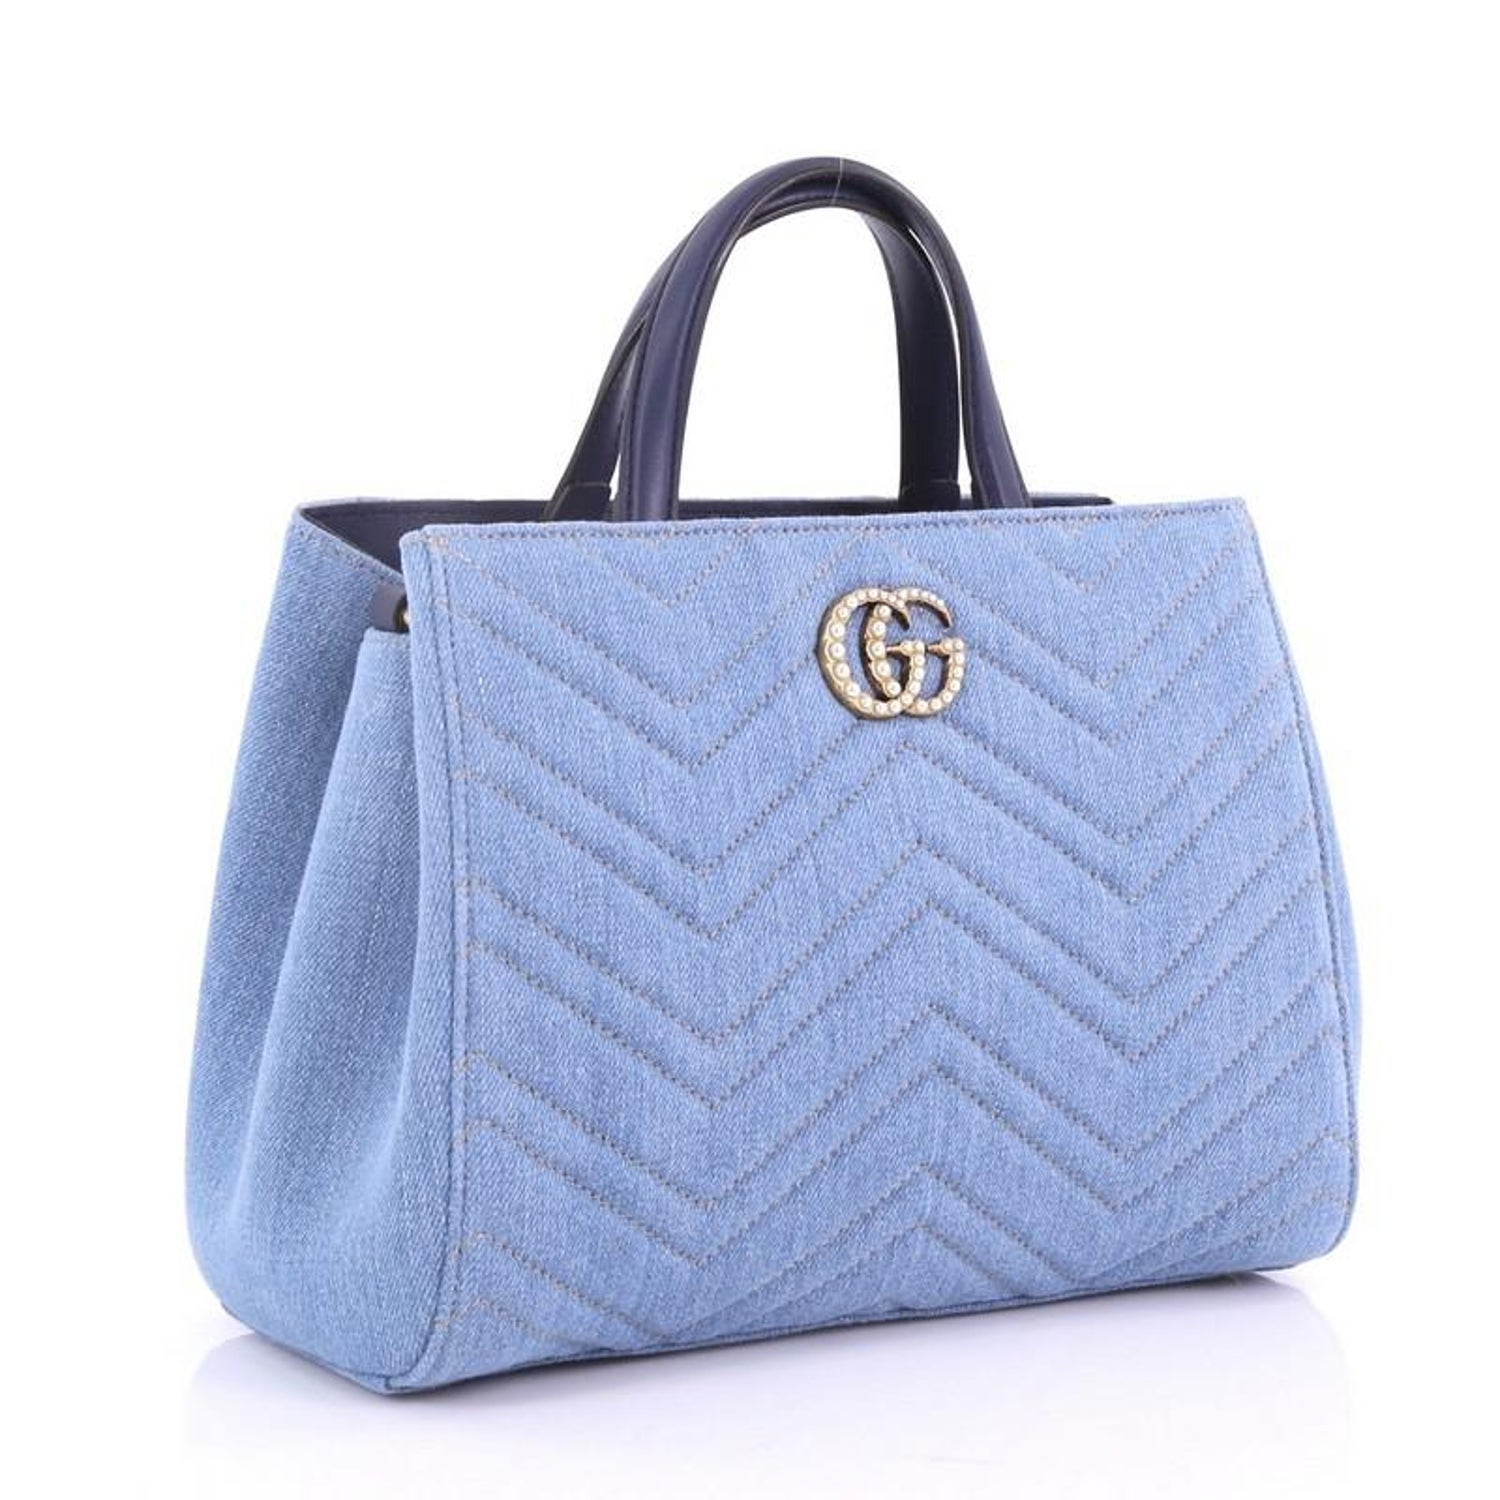 60ee2ef5d Gucci Pearly GG Marmont Tote Matelasse Denim Small at 1stdibs